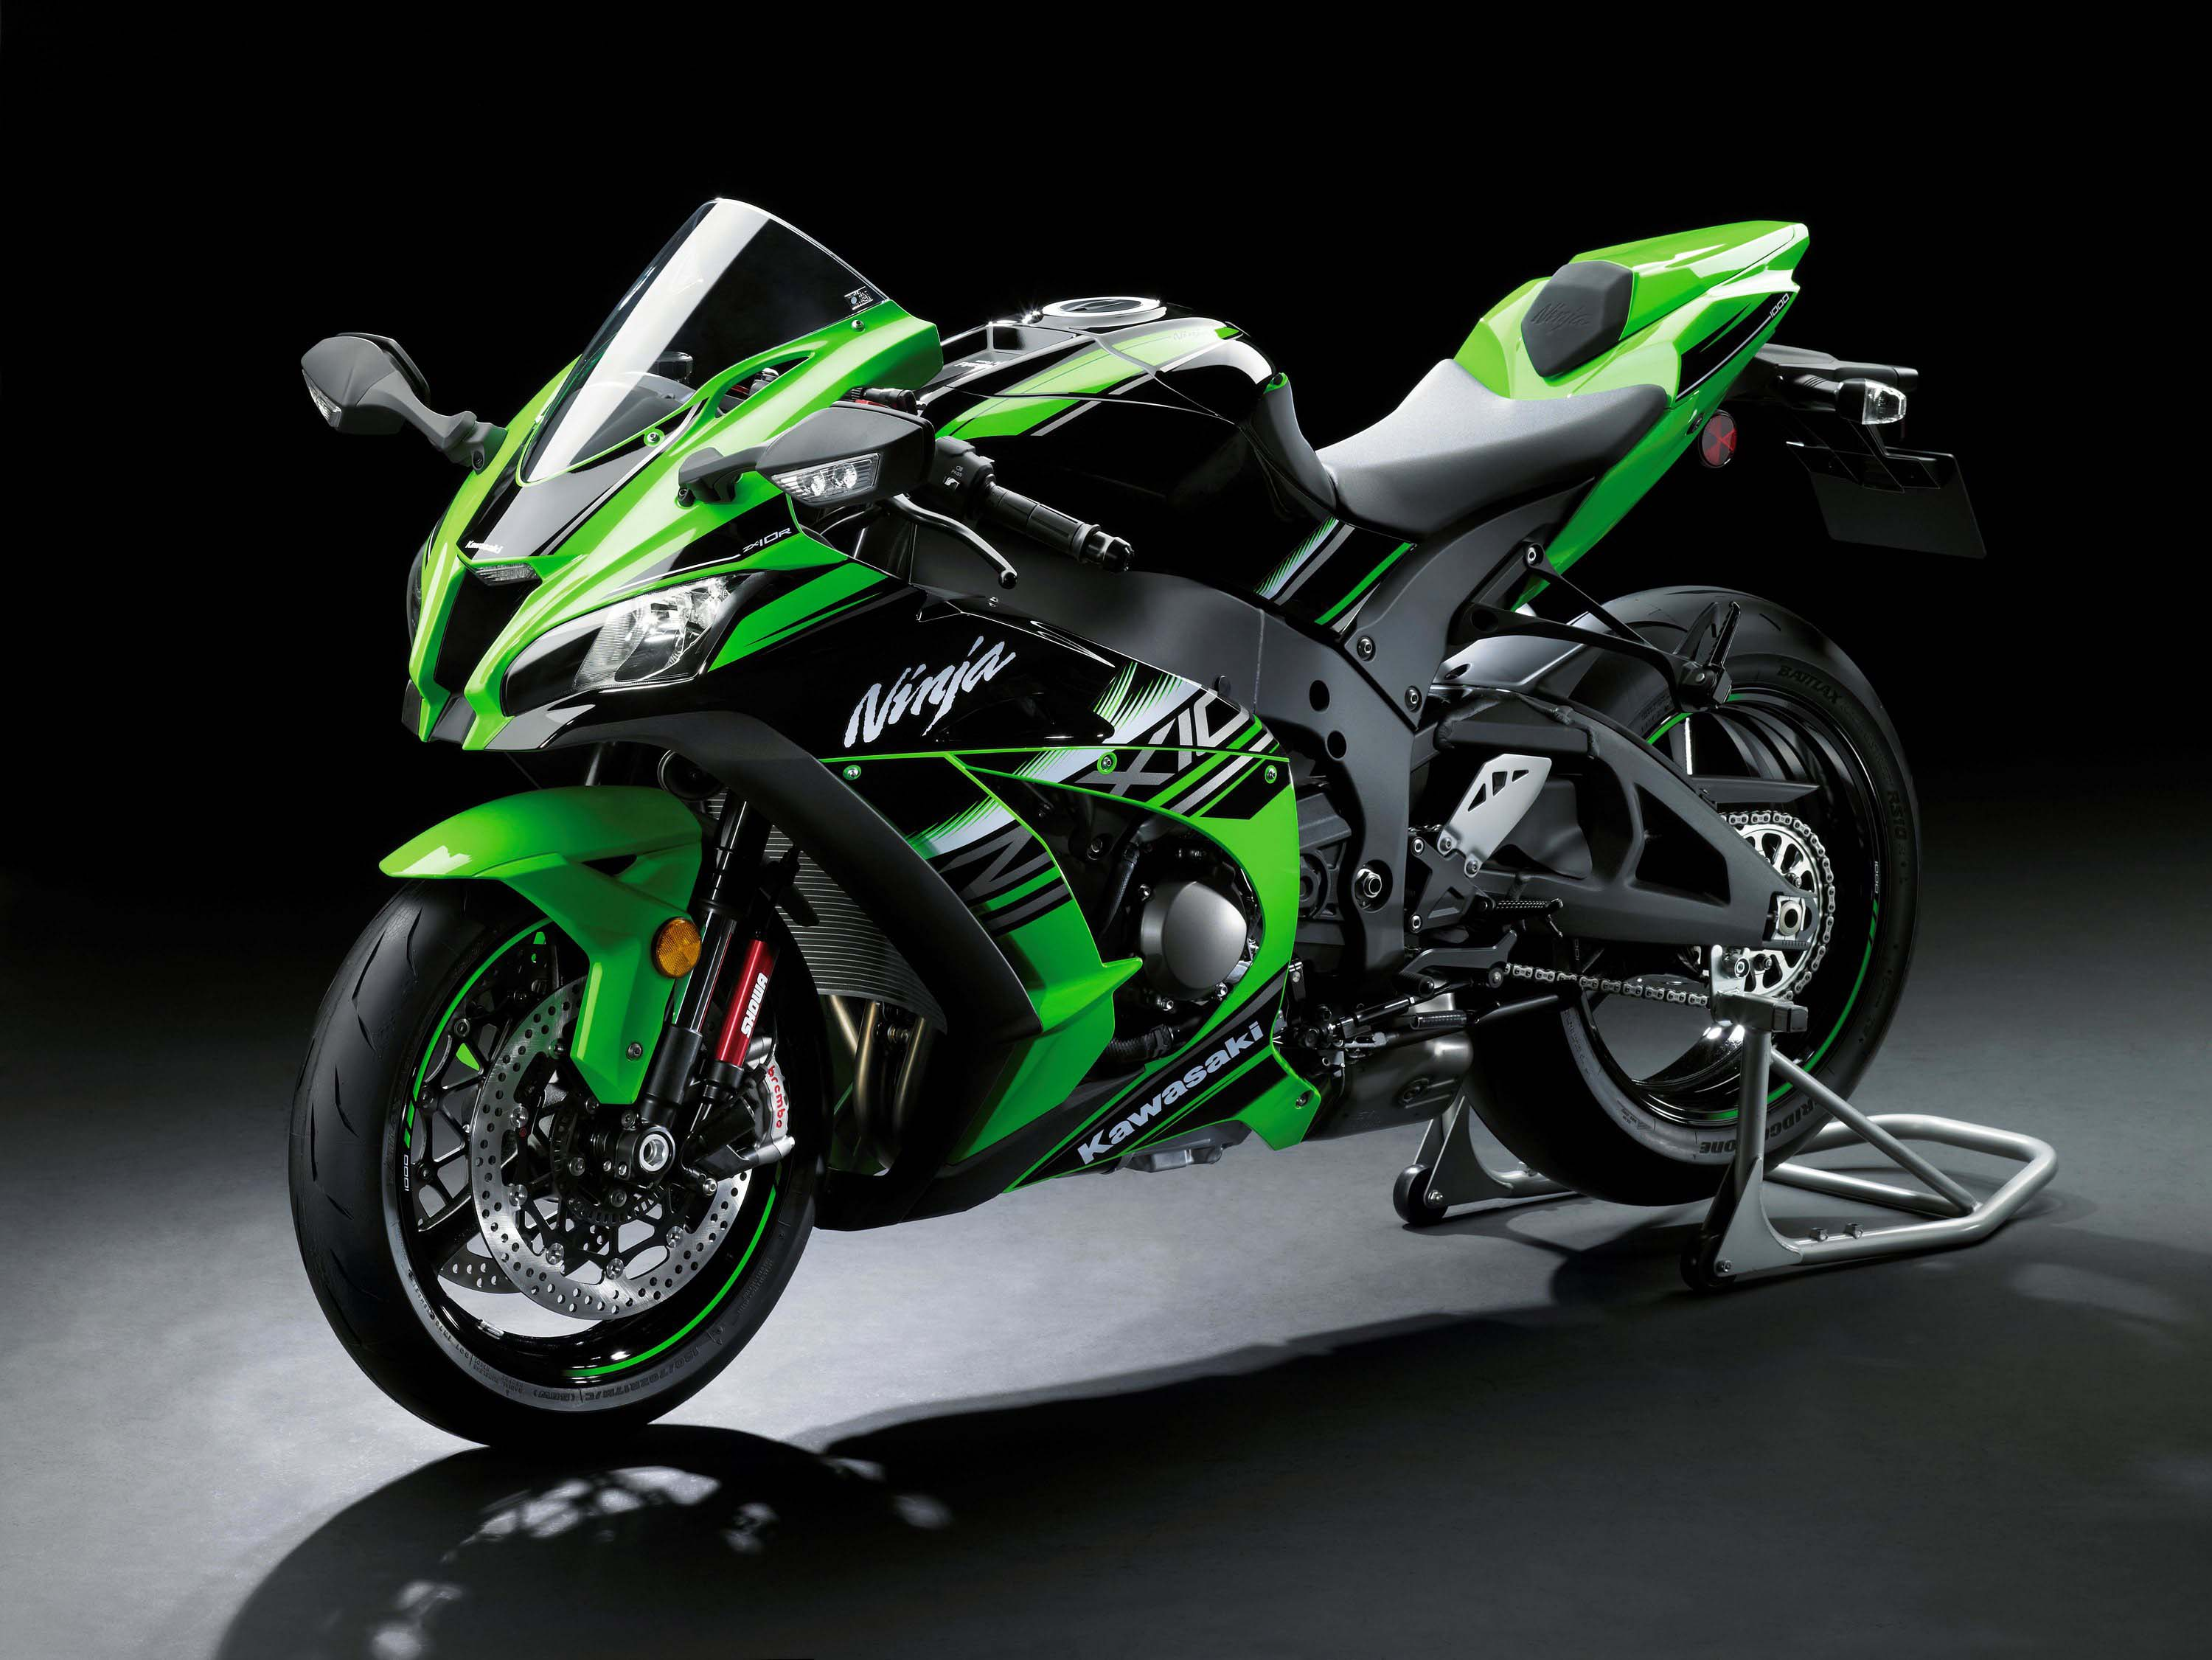 New Kawasaki Ninja Zx 10r Racing Parts Catalogue Released